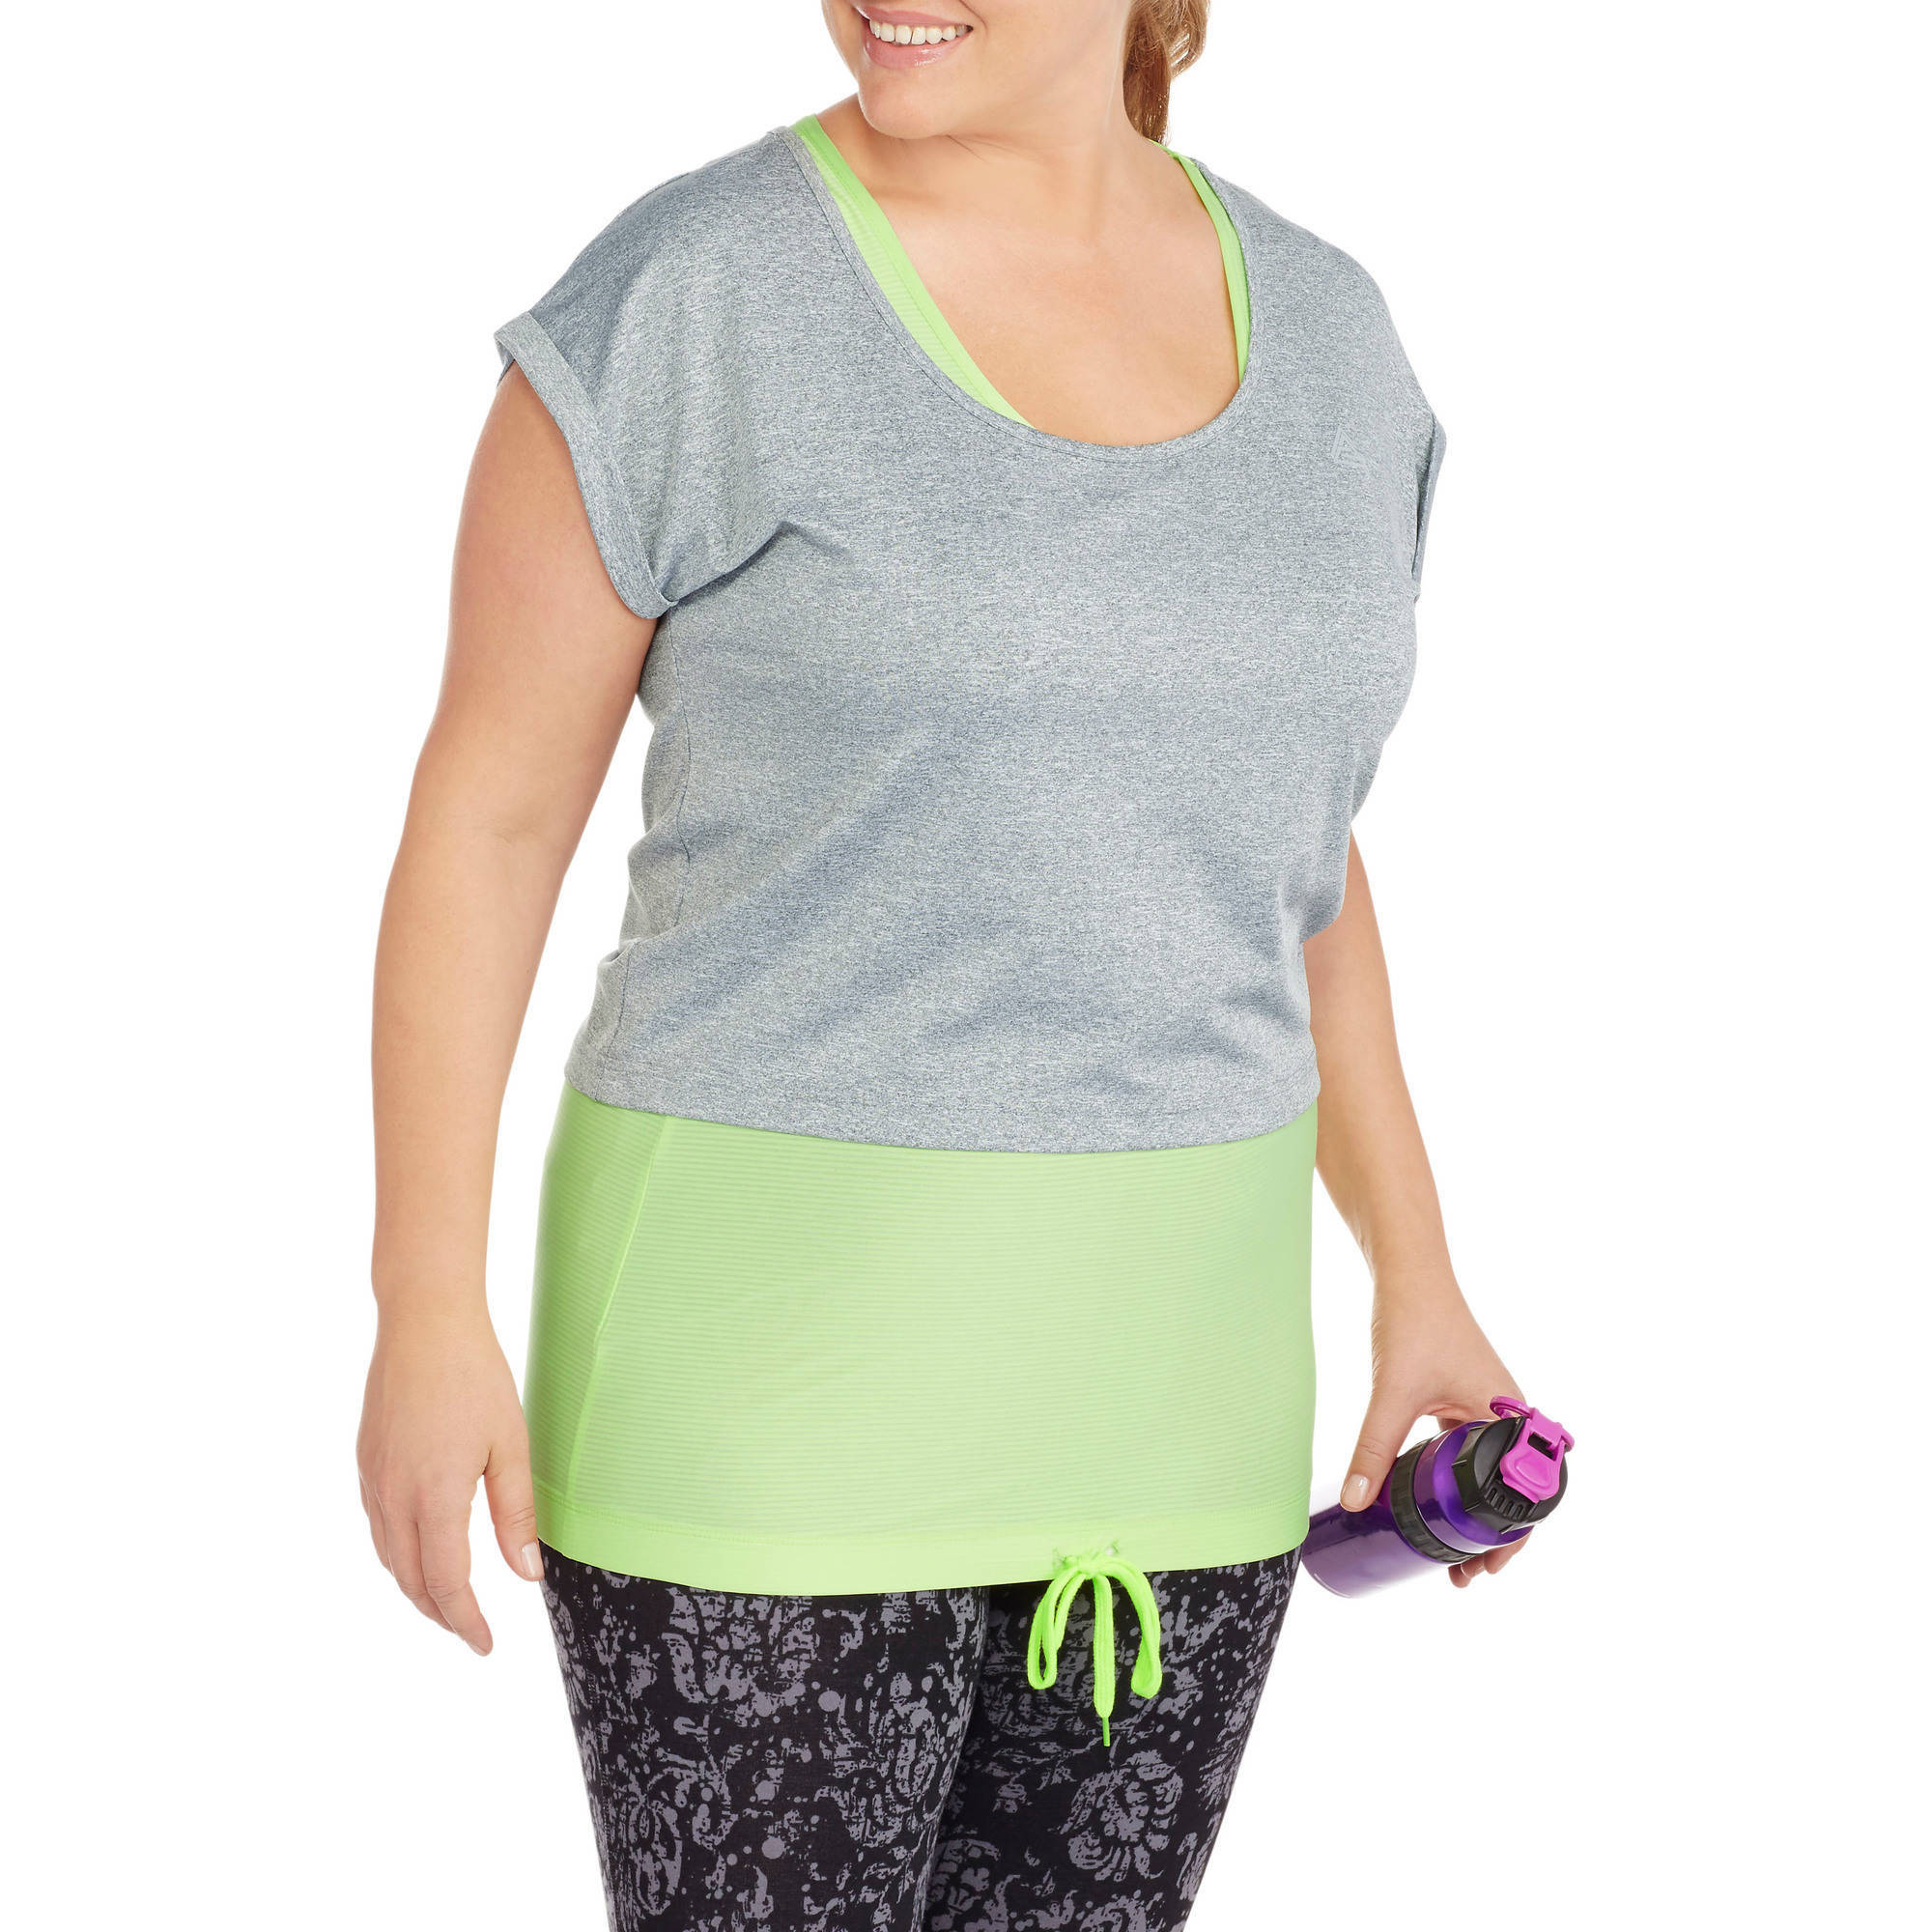 Women's Plus-Size  2 Pc Bra Tank Top With Reflective And Rib